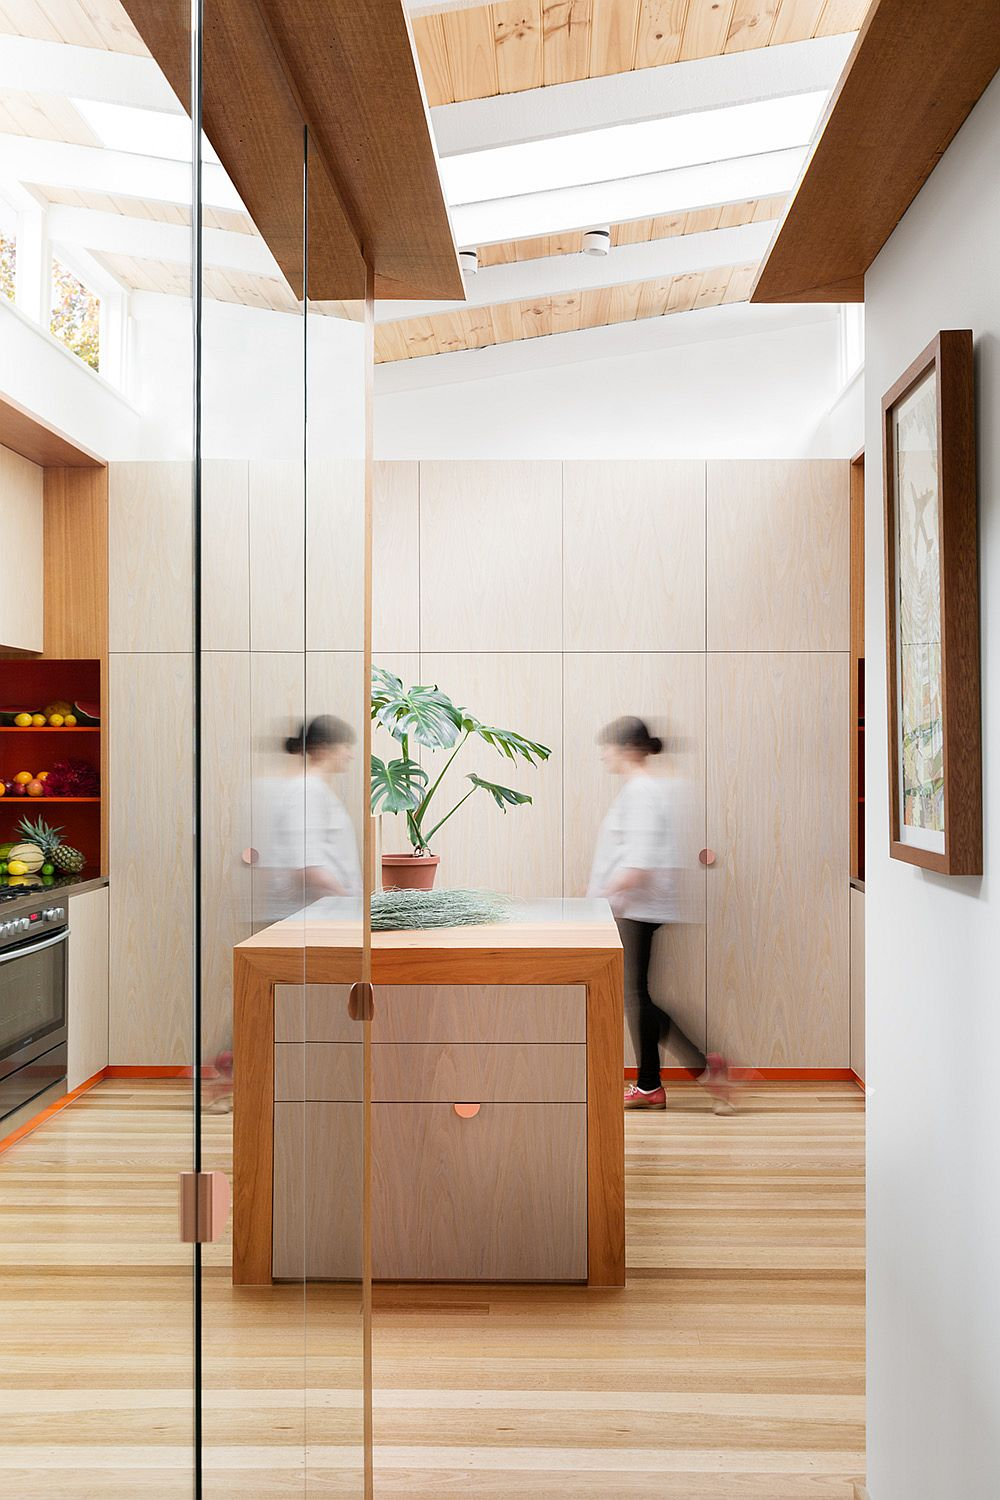 Wood and white makes a bold statement in the light-filled kitchen